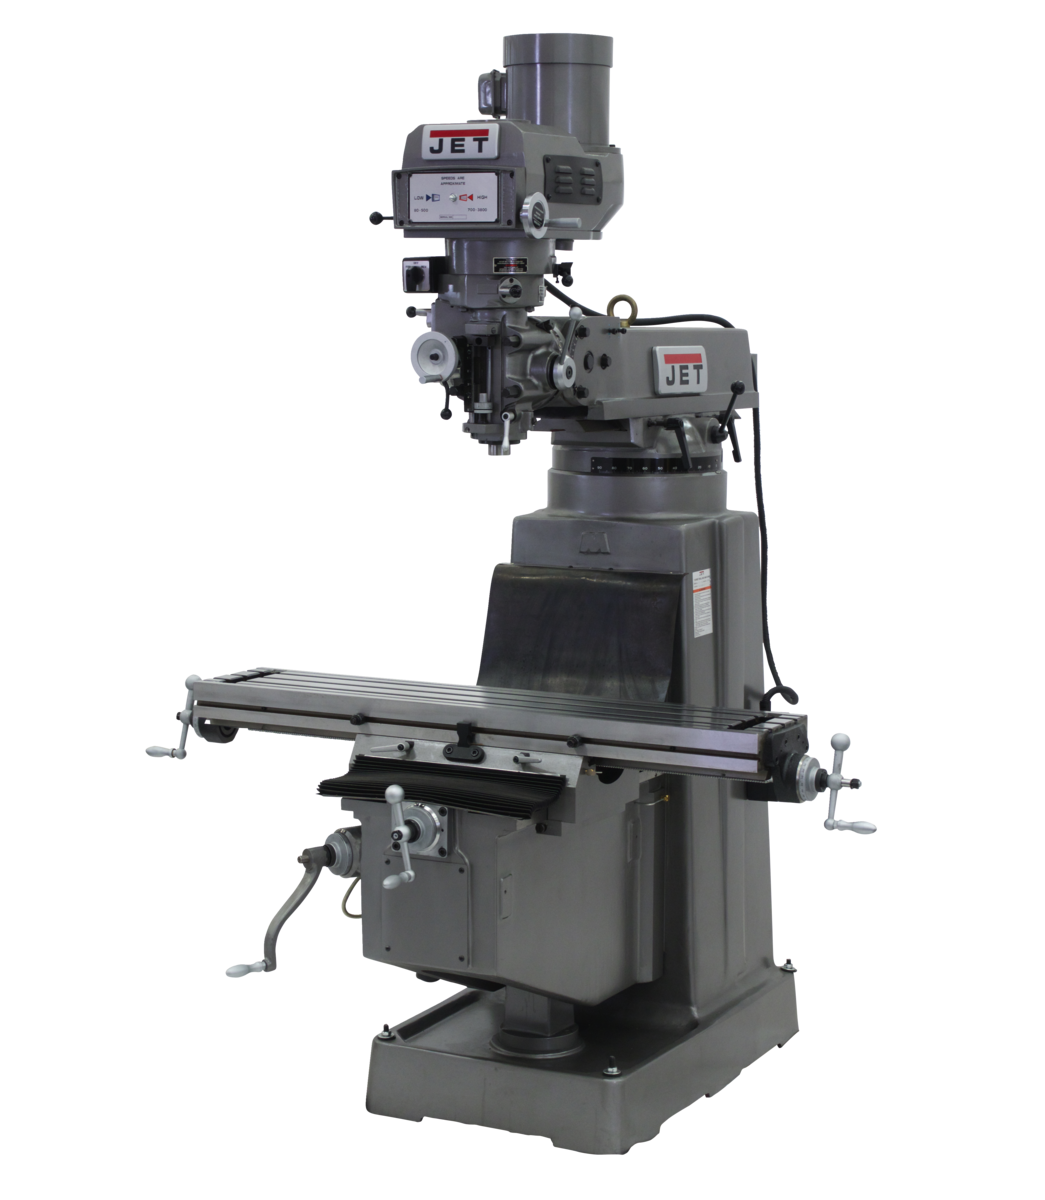 JTM-1050VS2 Mill With 3-Axis Newall DP700 DRO (Quill)